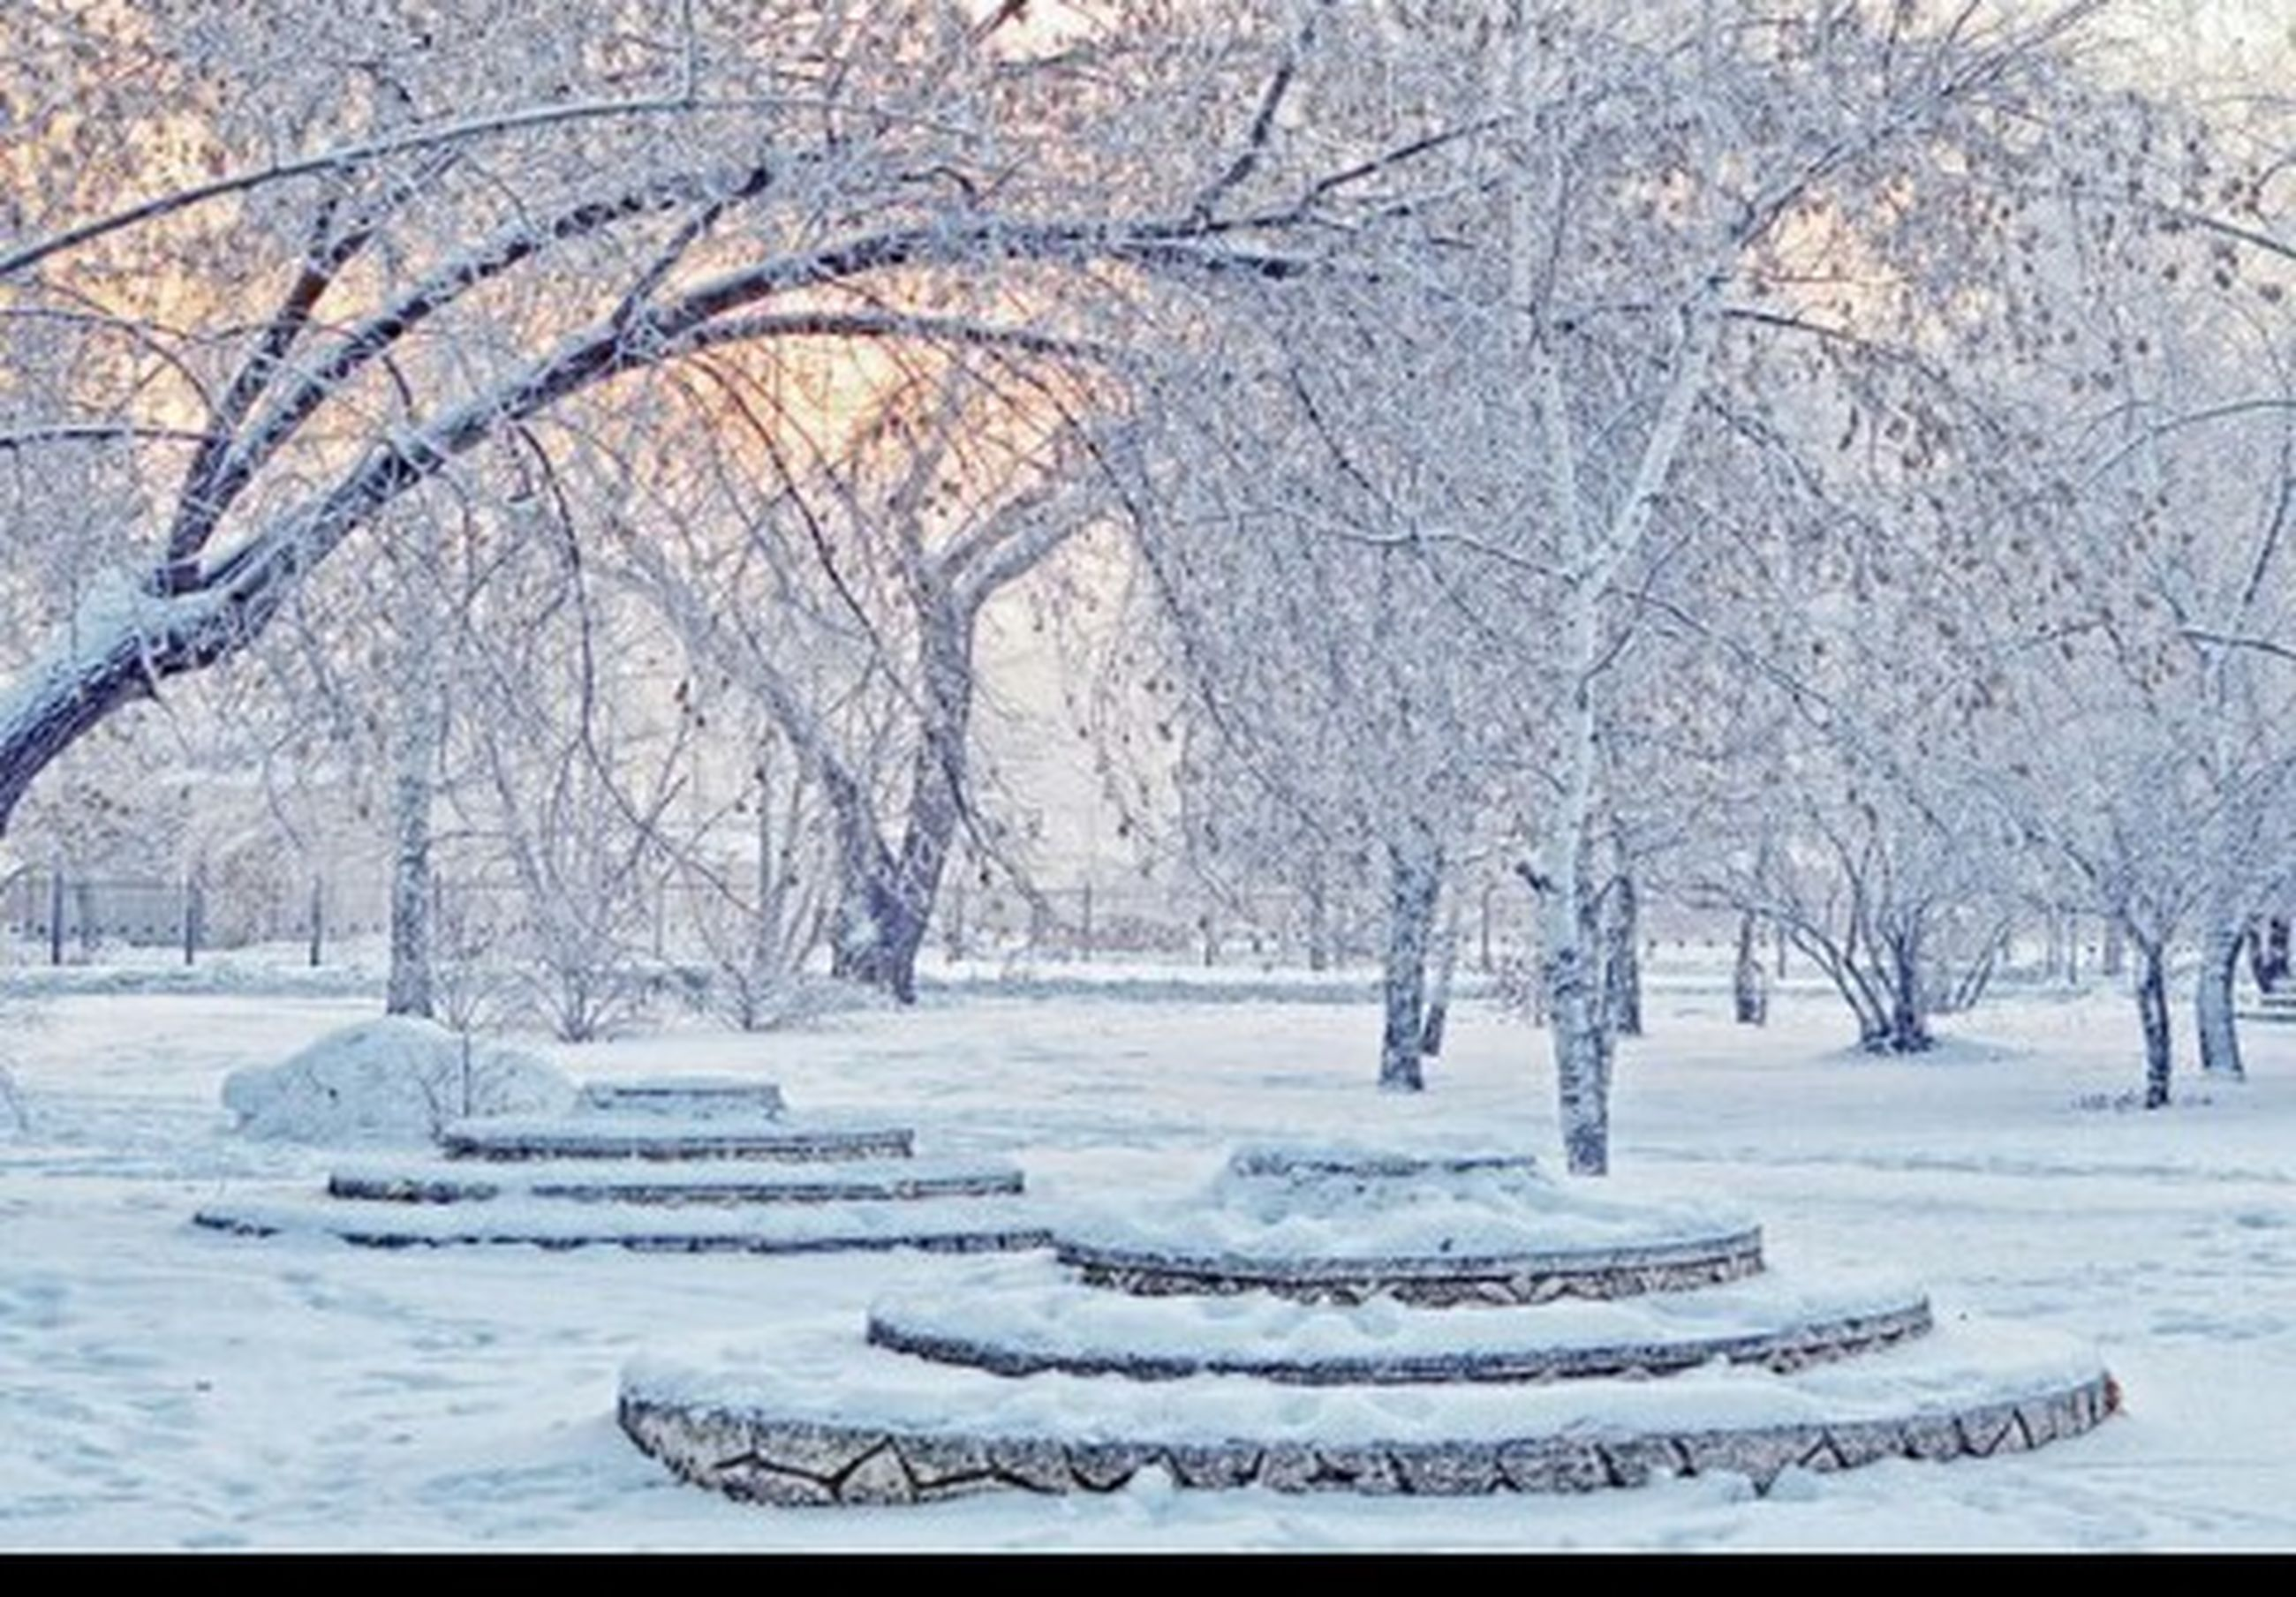 tree, snow, winter, cold temperature, bare tree, tranquility, season, nature, branch, weather, park - man made space, tranquil scene, covering, scenics, day, beauty in nature, landscape, field, white color, outdoors